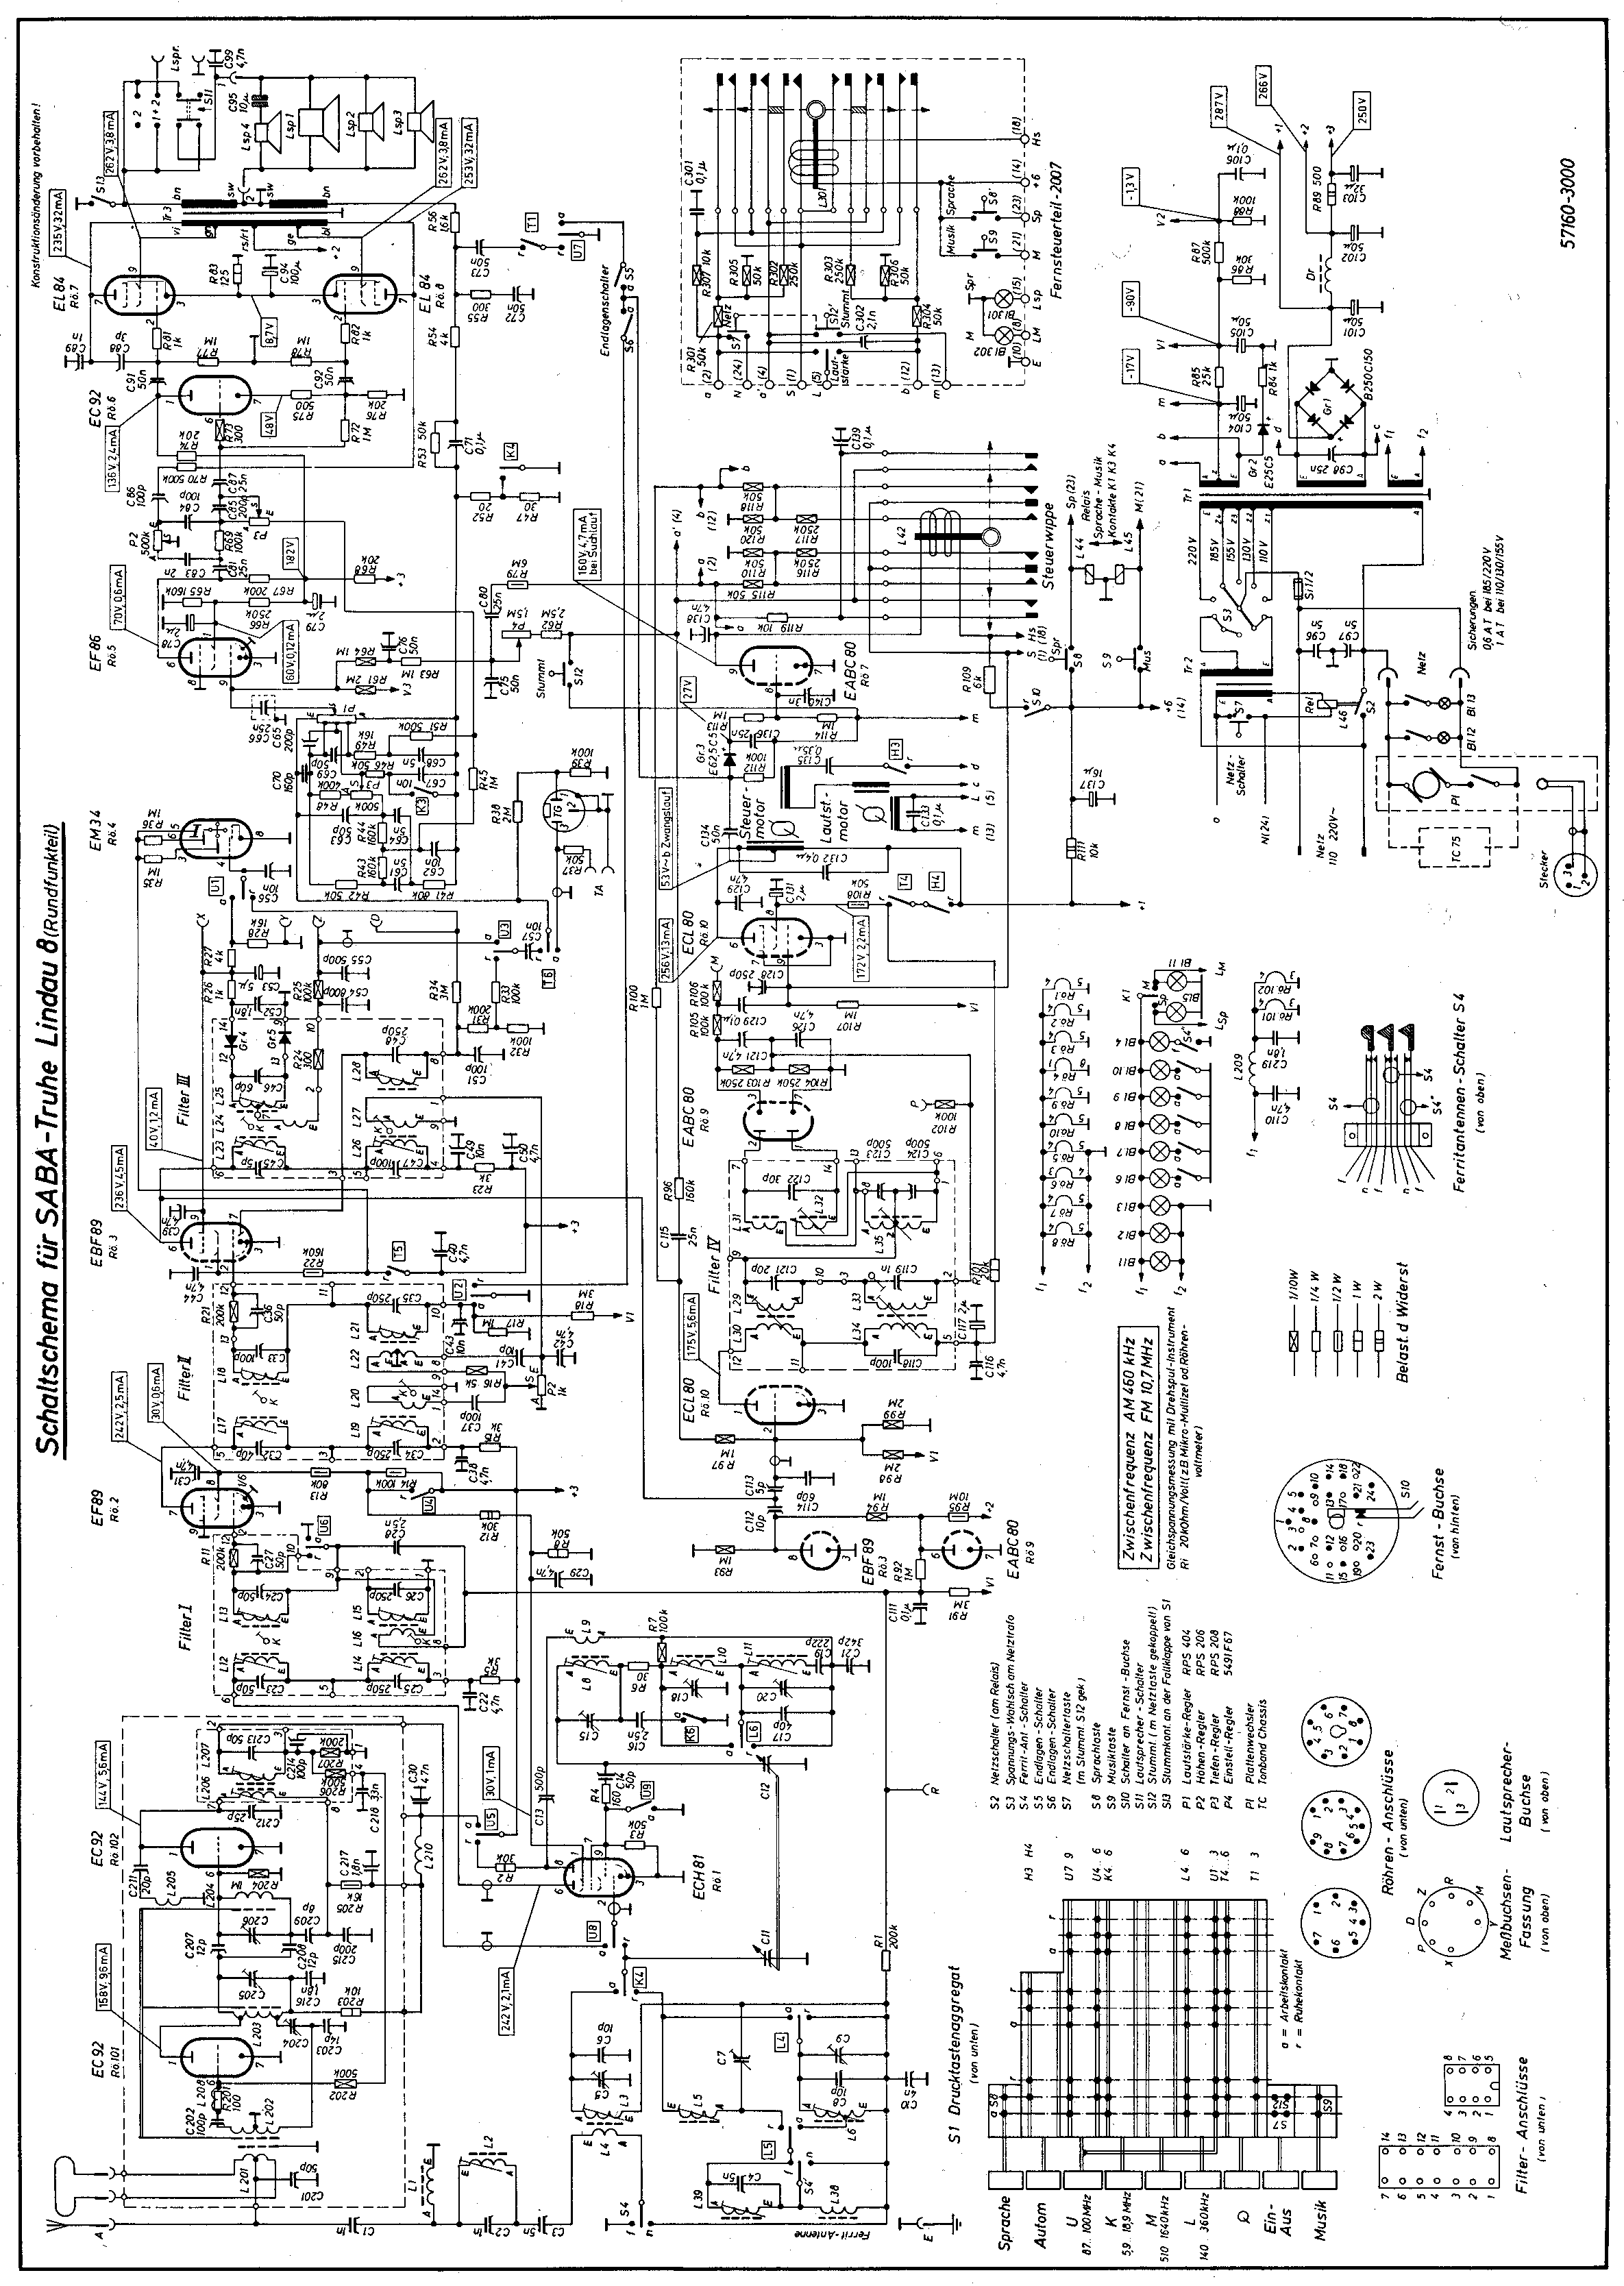 Schematics Perfect With Irfanview 3 98 3 99 Or 4 00